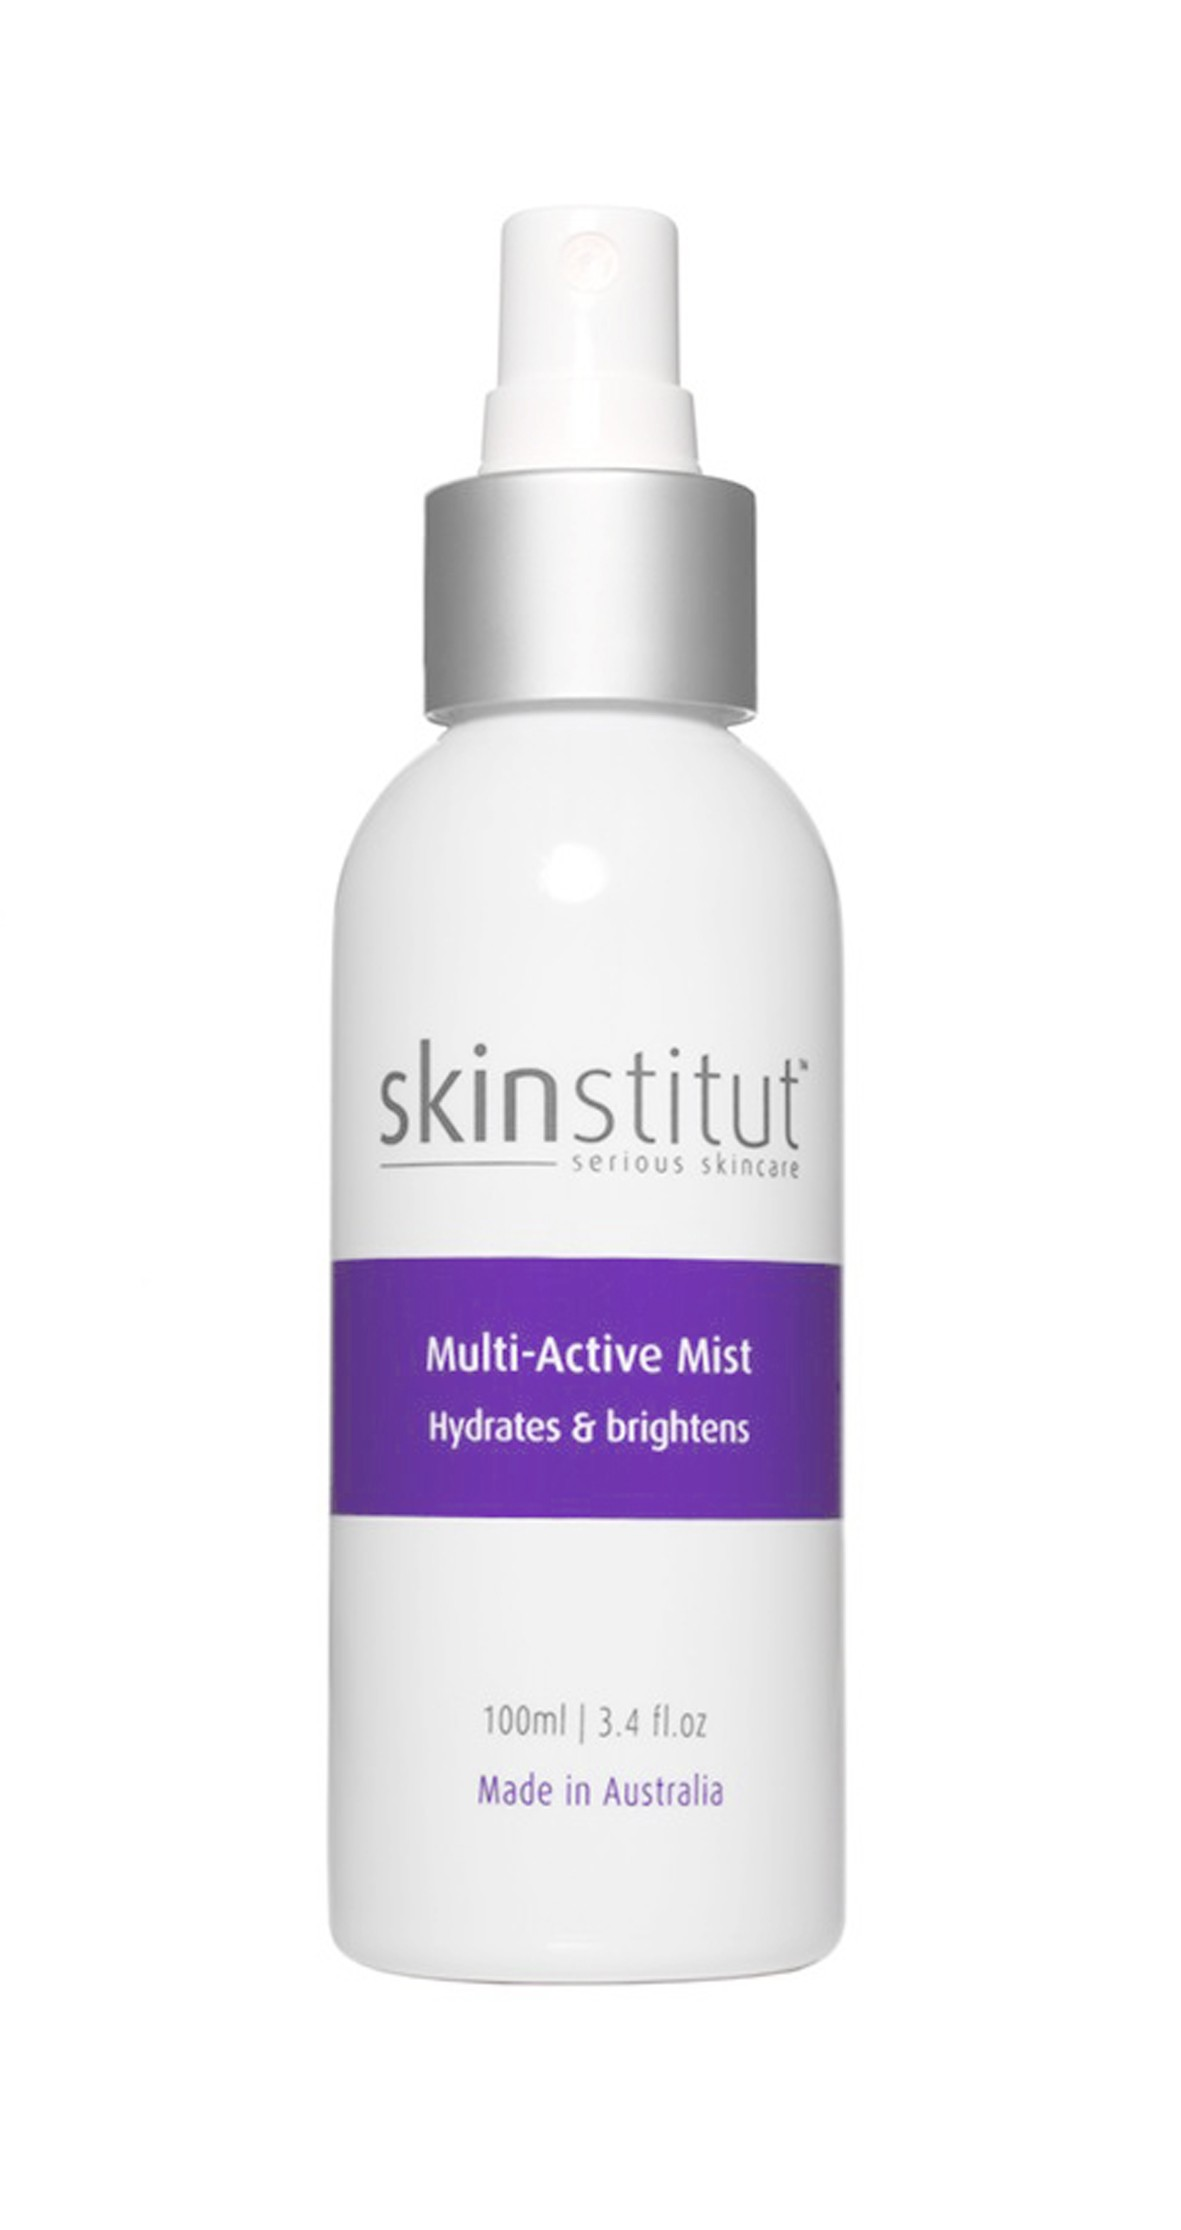 SKINSTITUT - Multi-Active Mist 100ML